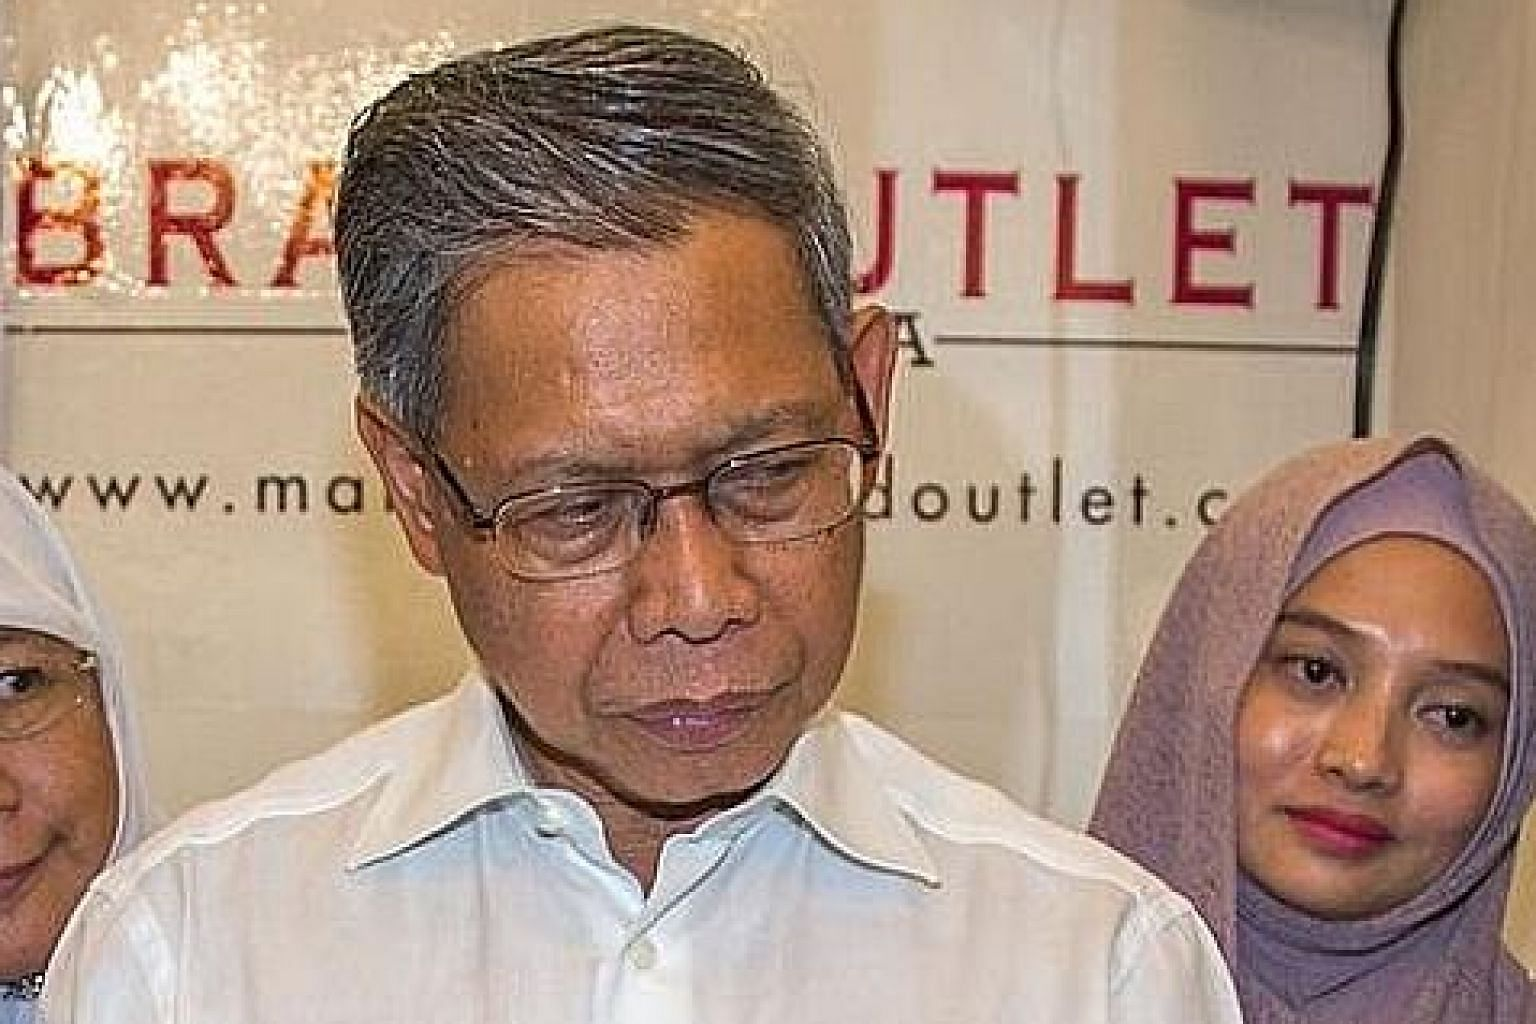 There is talk that former ministers Mustapa Mohamad (top) and Hamzah Zainuddin could be back in the Malaysian Cabinet.